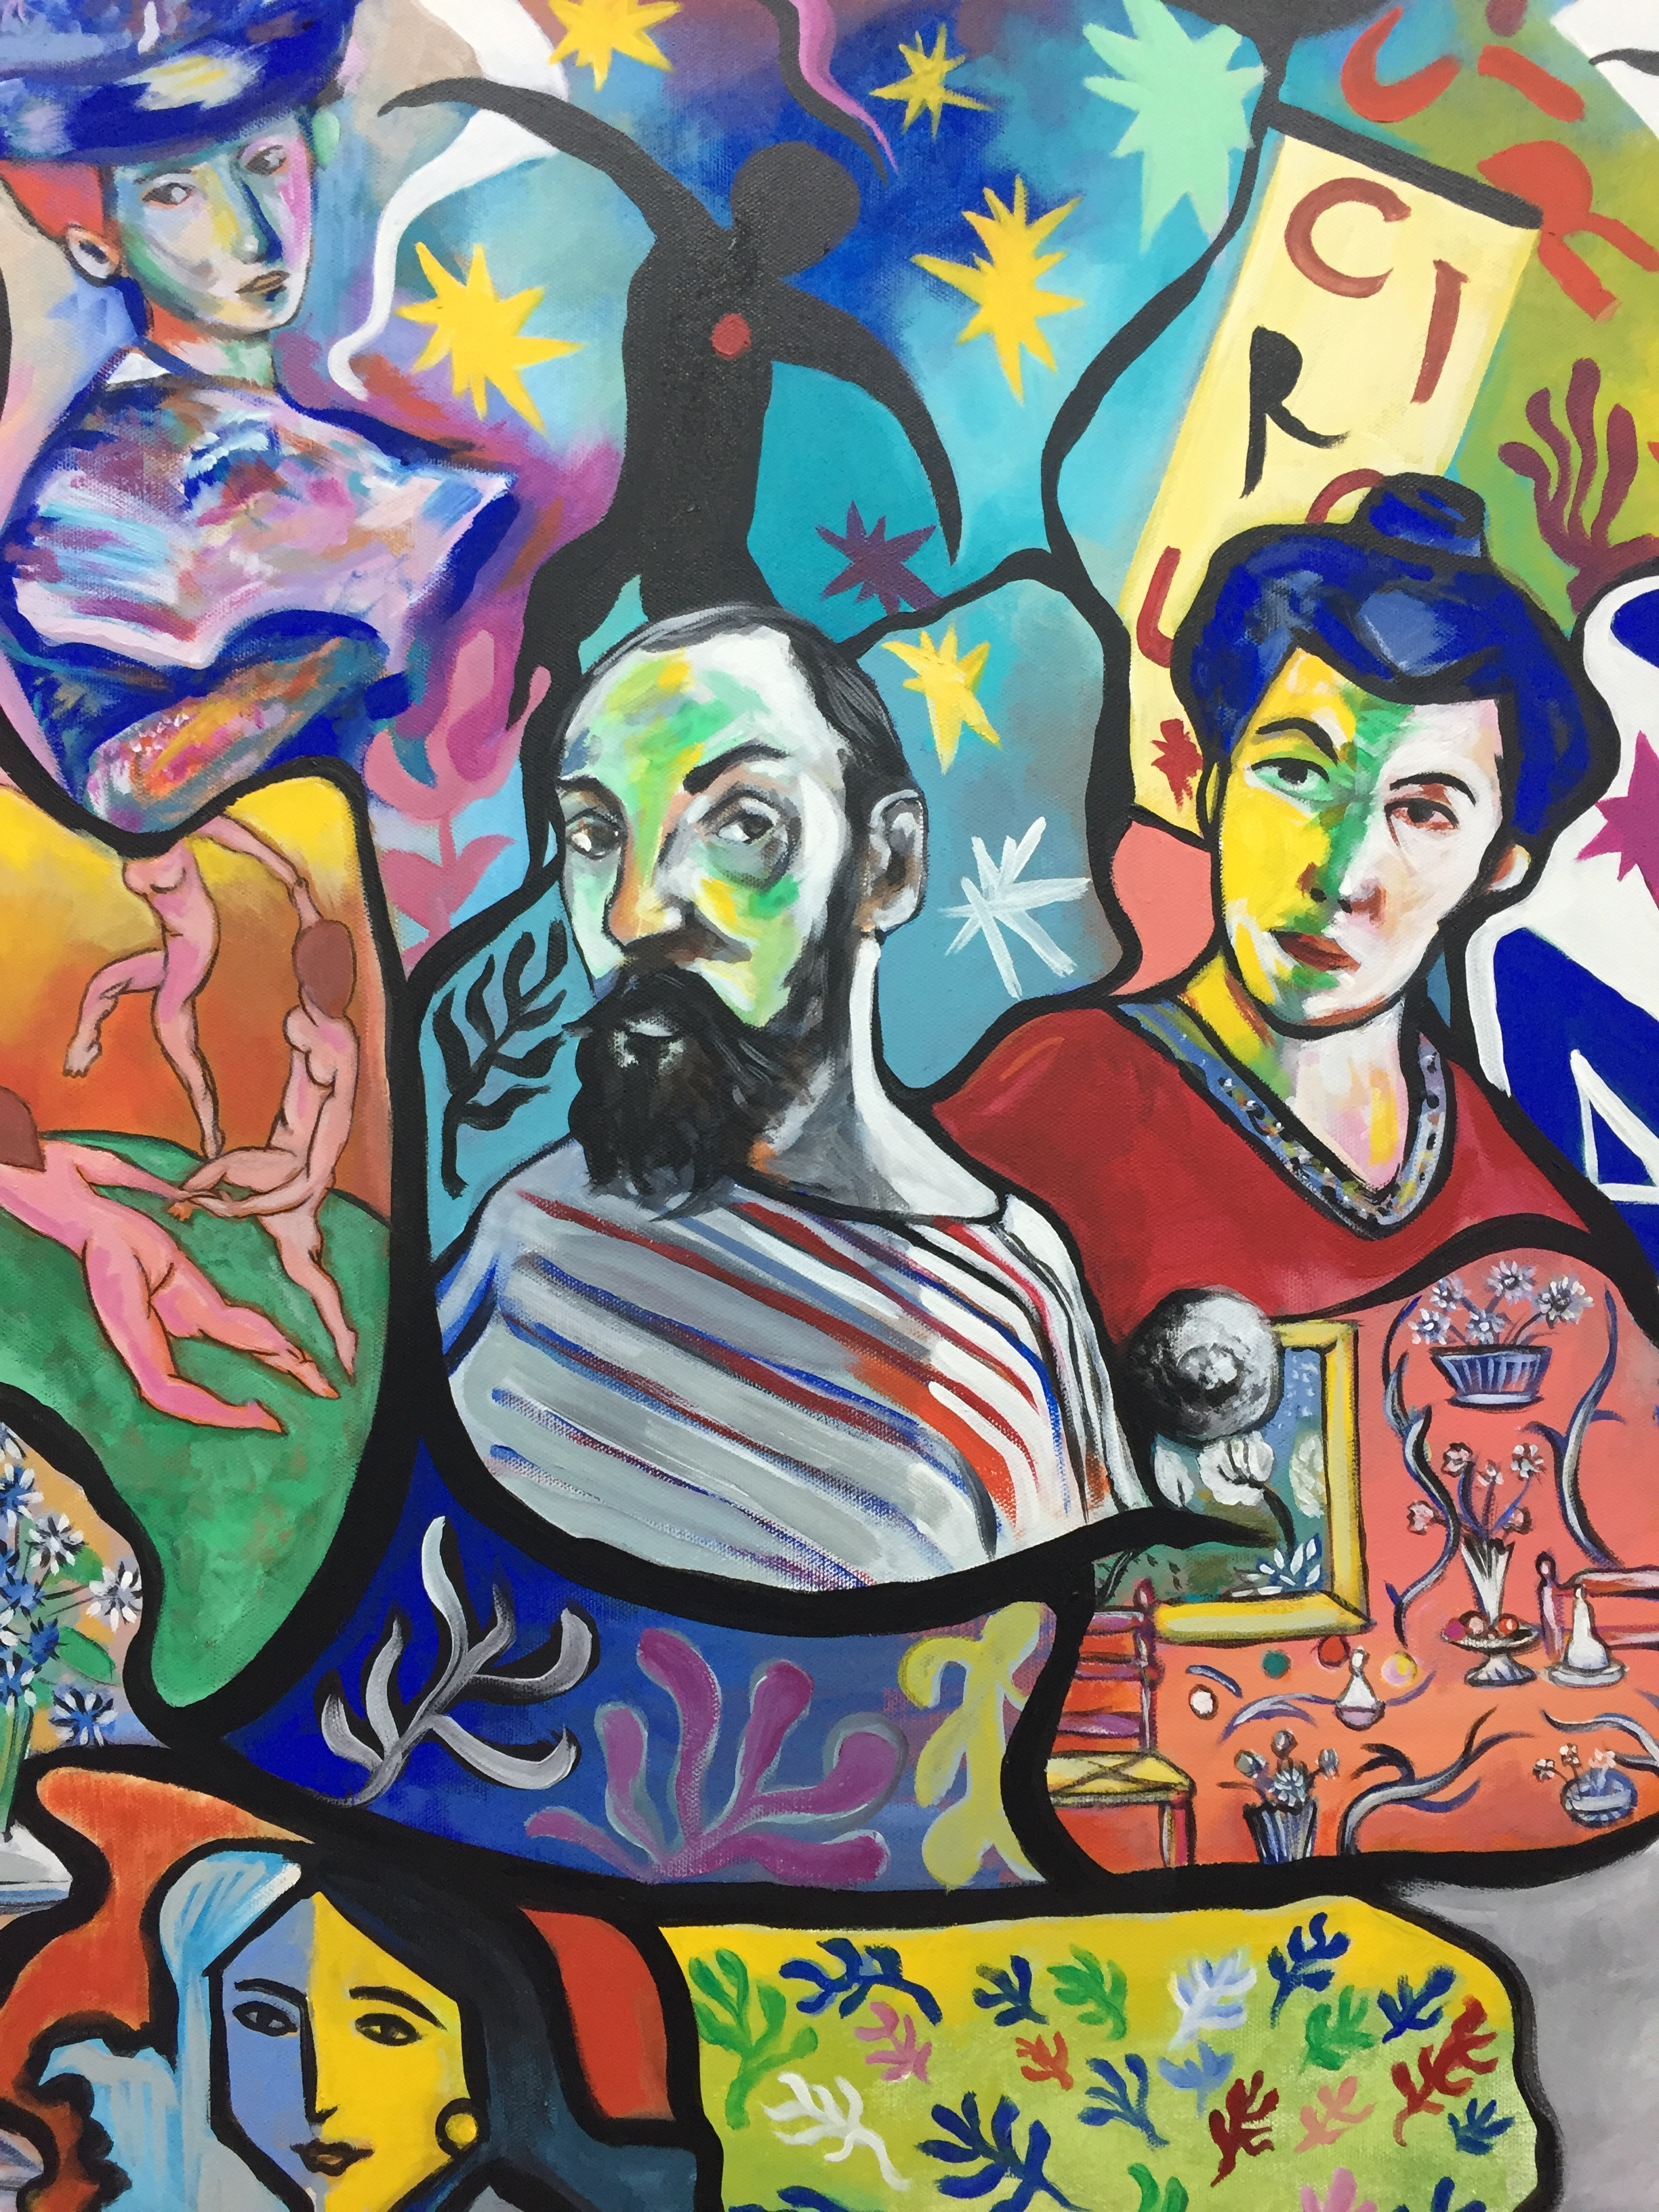 (Detail) Henri Matisse by Anthony Hernandez, https://www.anthonyhernandezart.com/